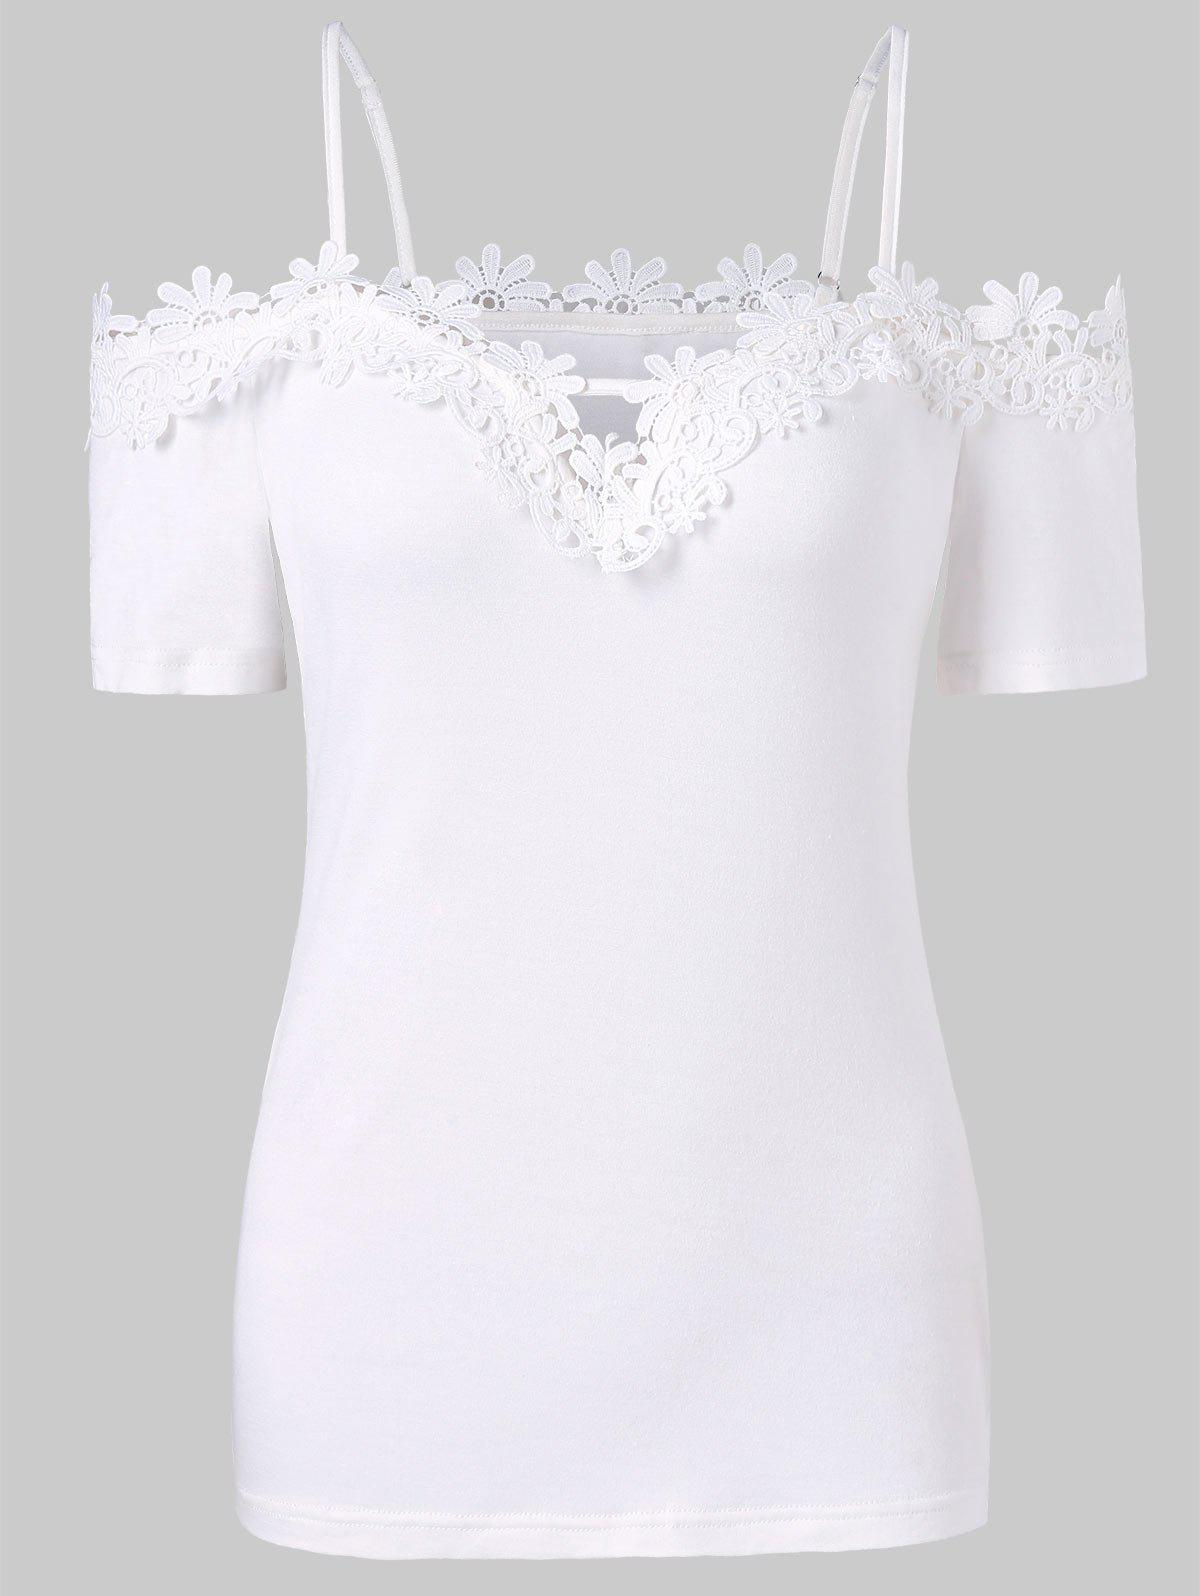 Lace Applique Open Shoulder T-shirt - WHITE L